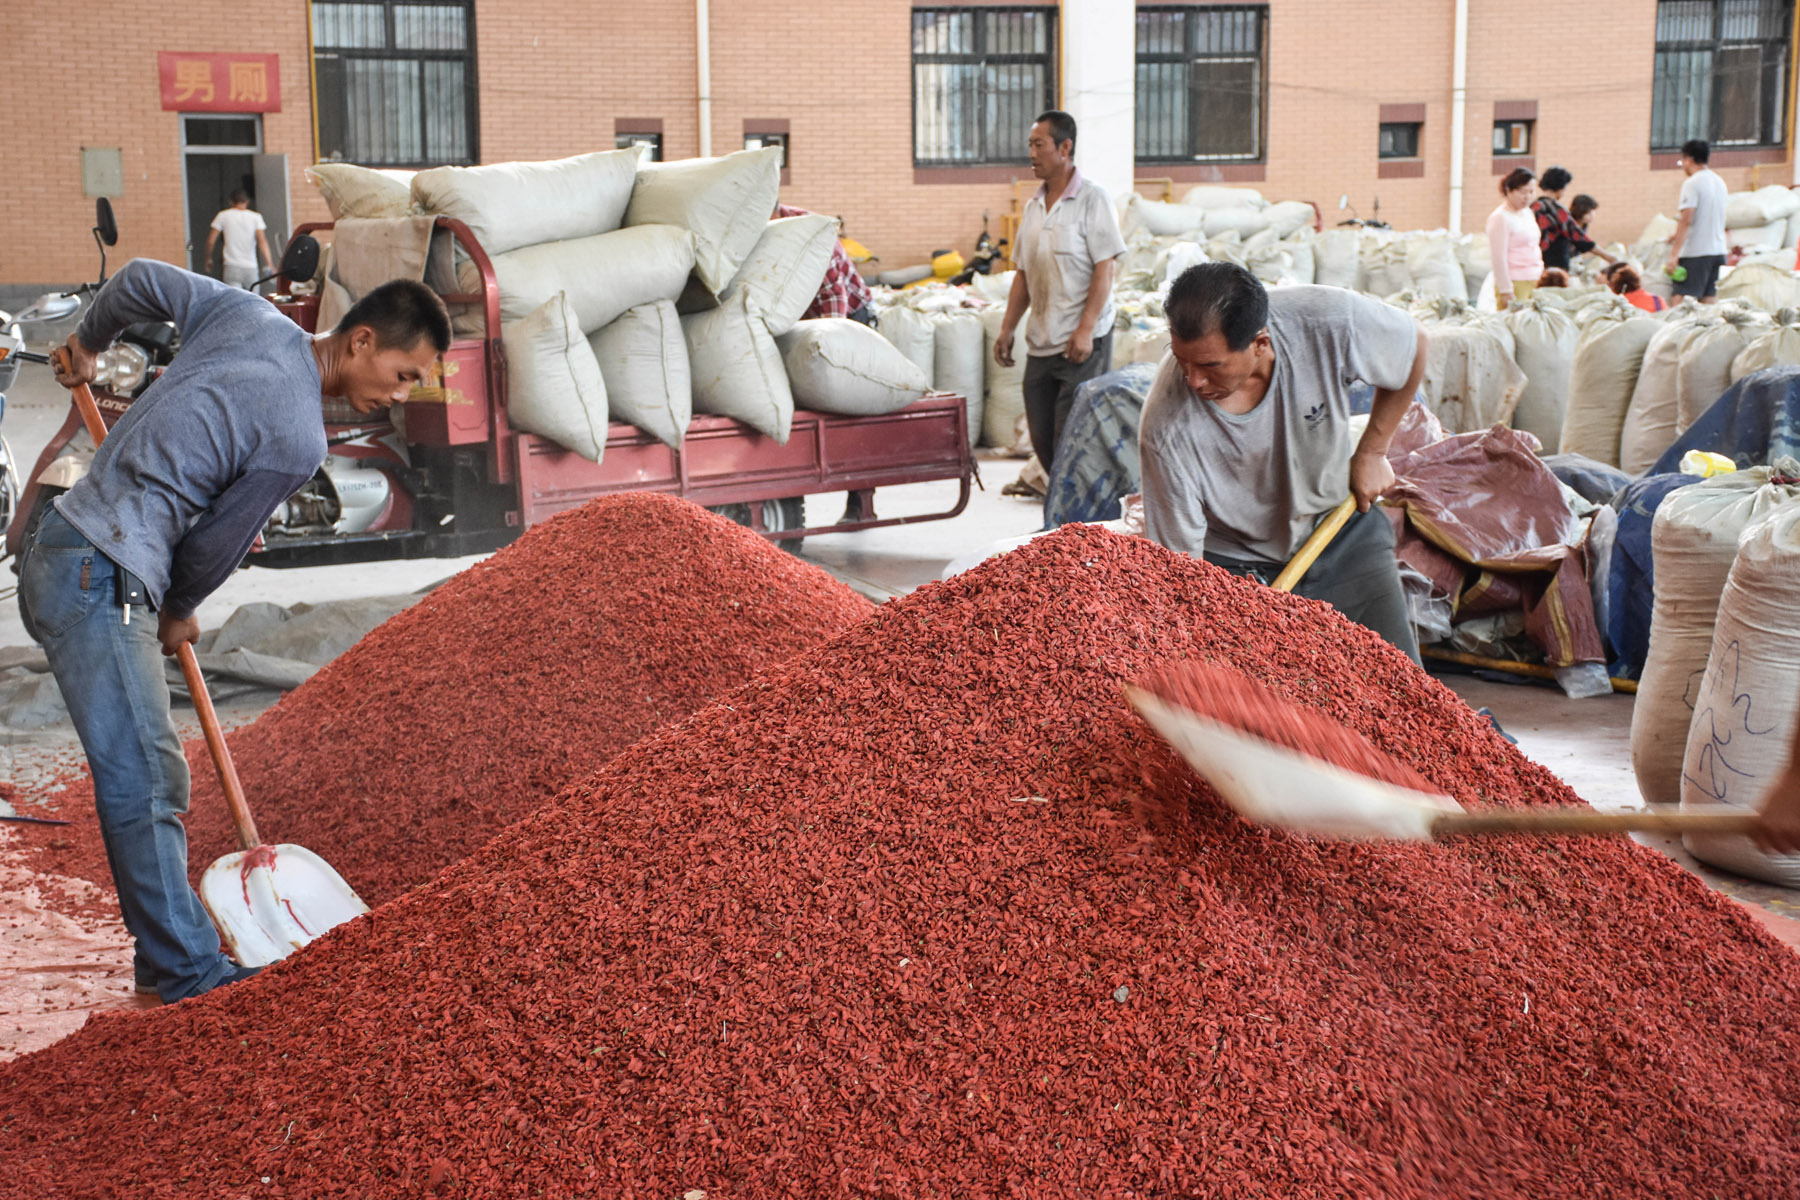 goji-pile-at-goji-wholesale-market_27985980490_o